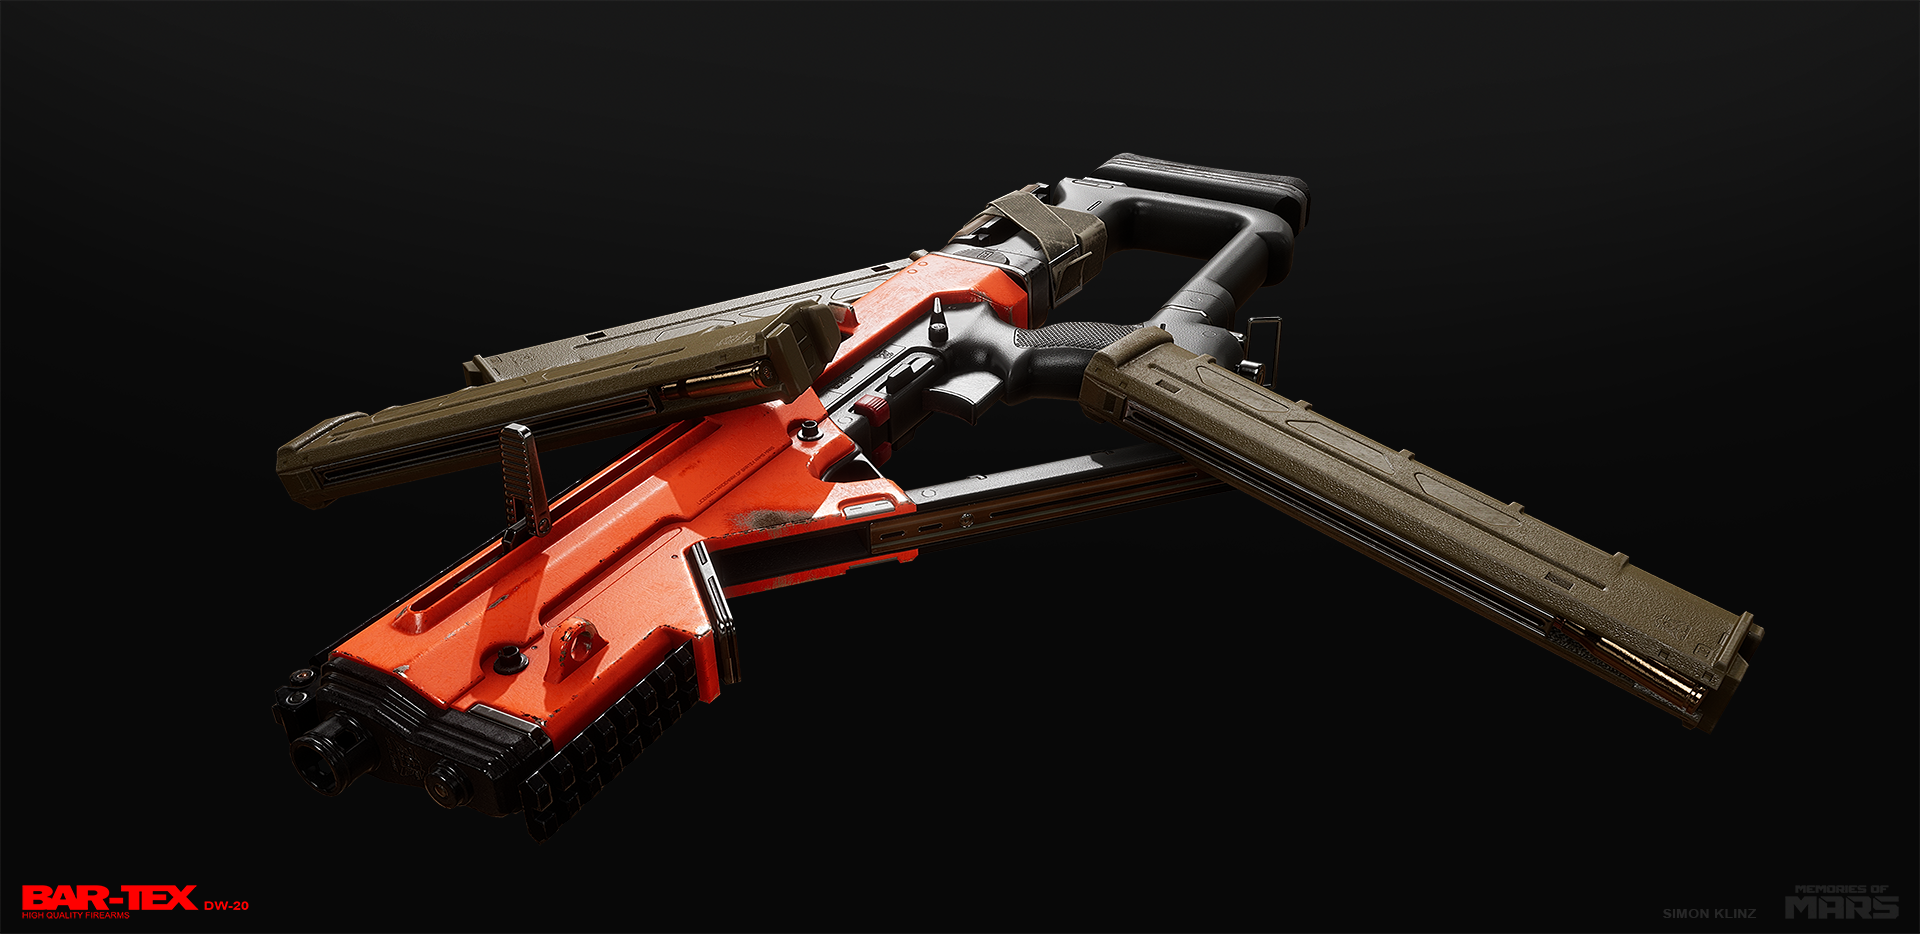 Submachine gun design for Memories of Mars. First person ingame model.